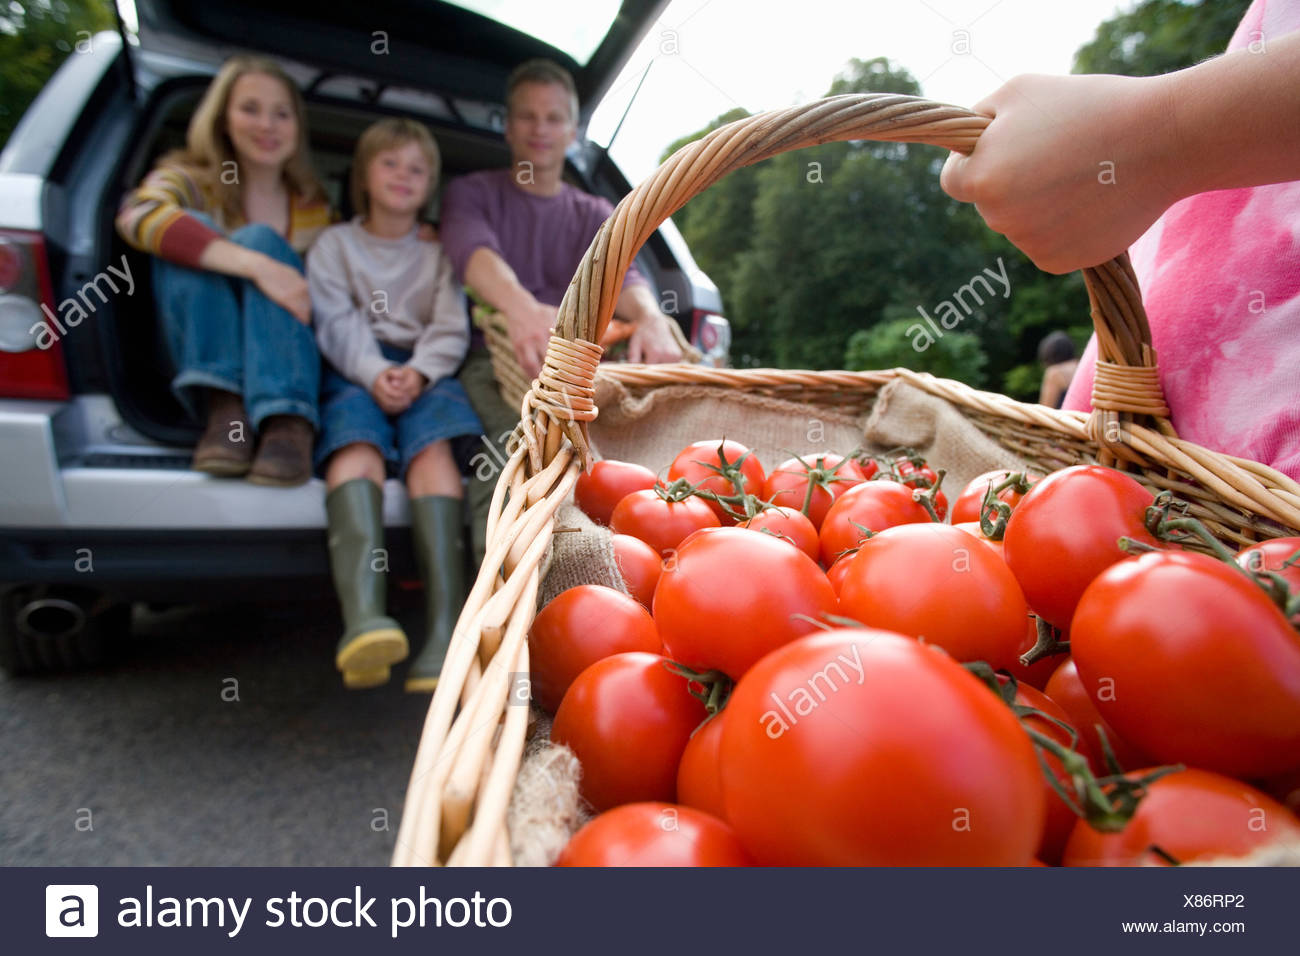 Girl (8-10) with basket of tomatoes, family in boot of car - Stock Image